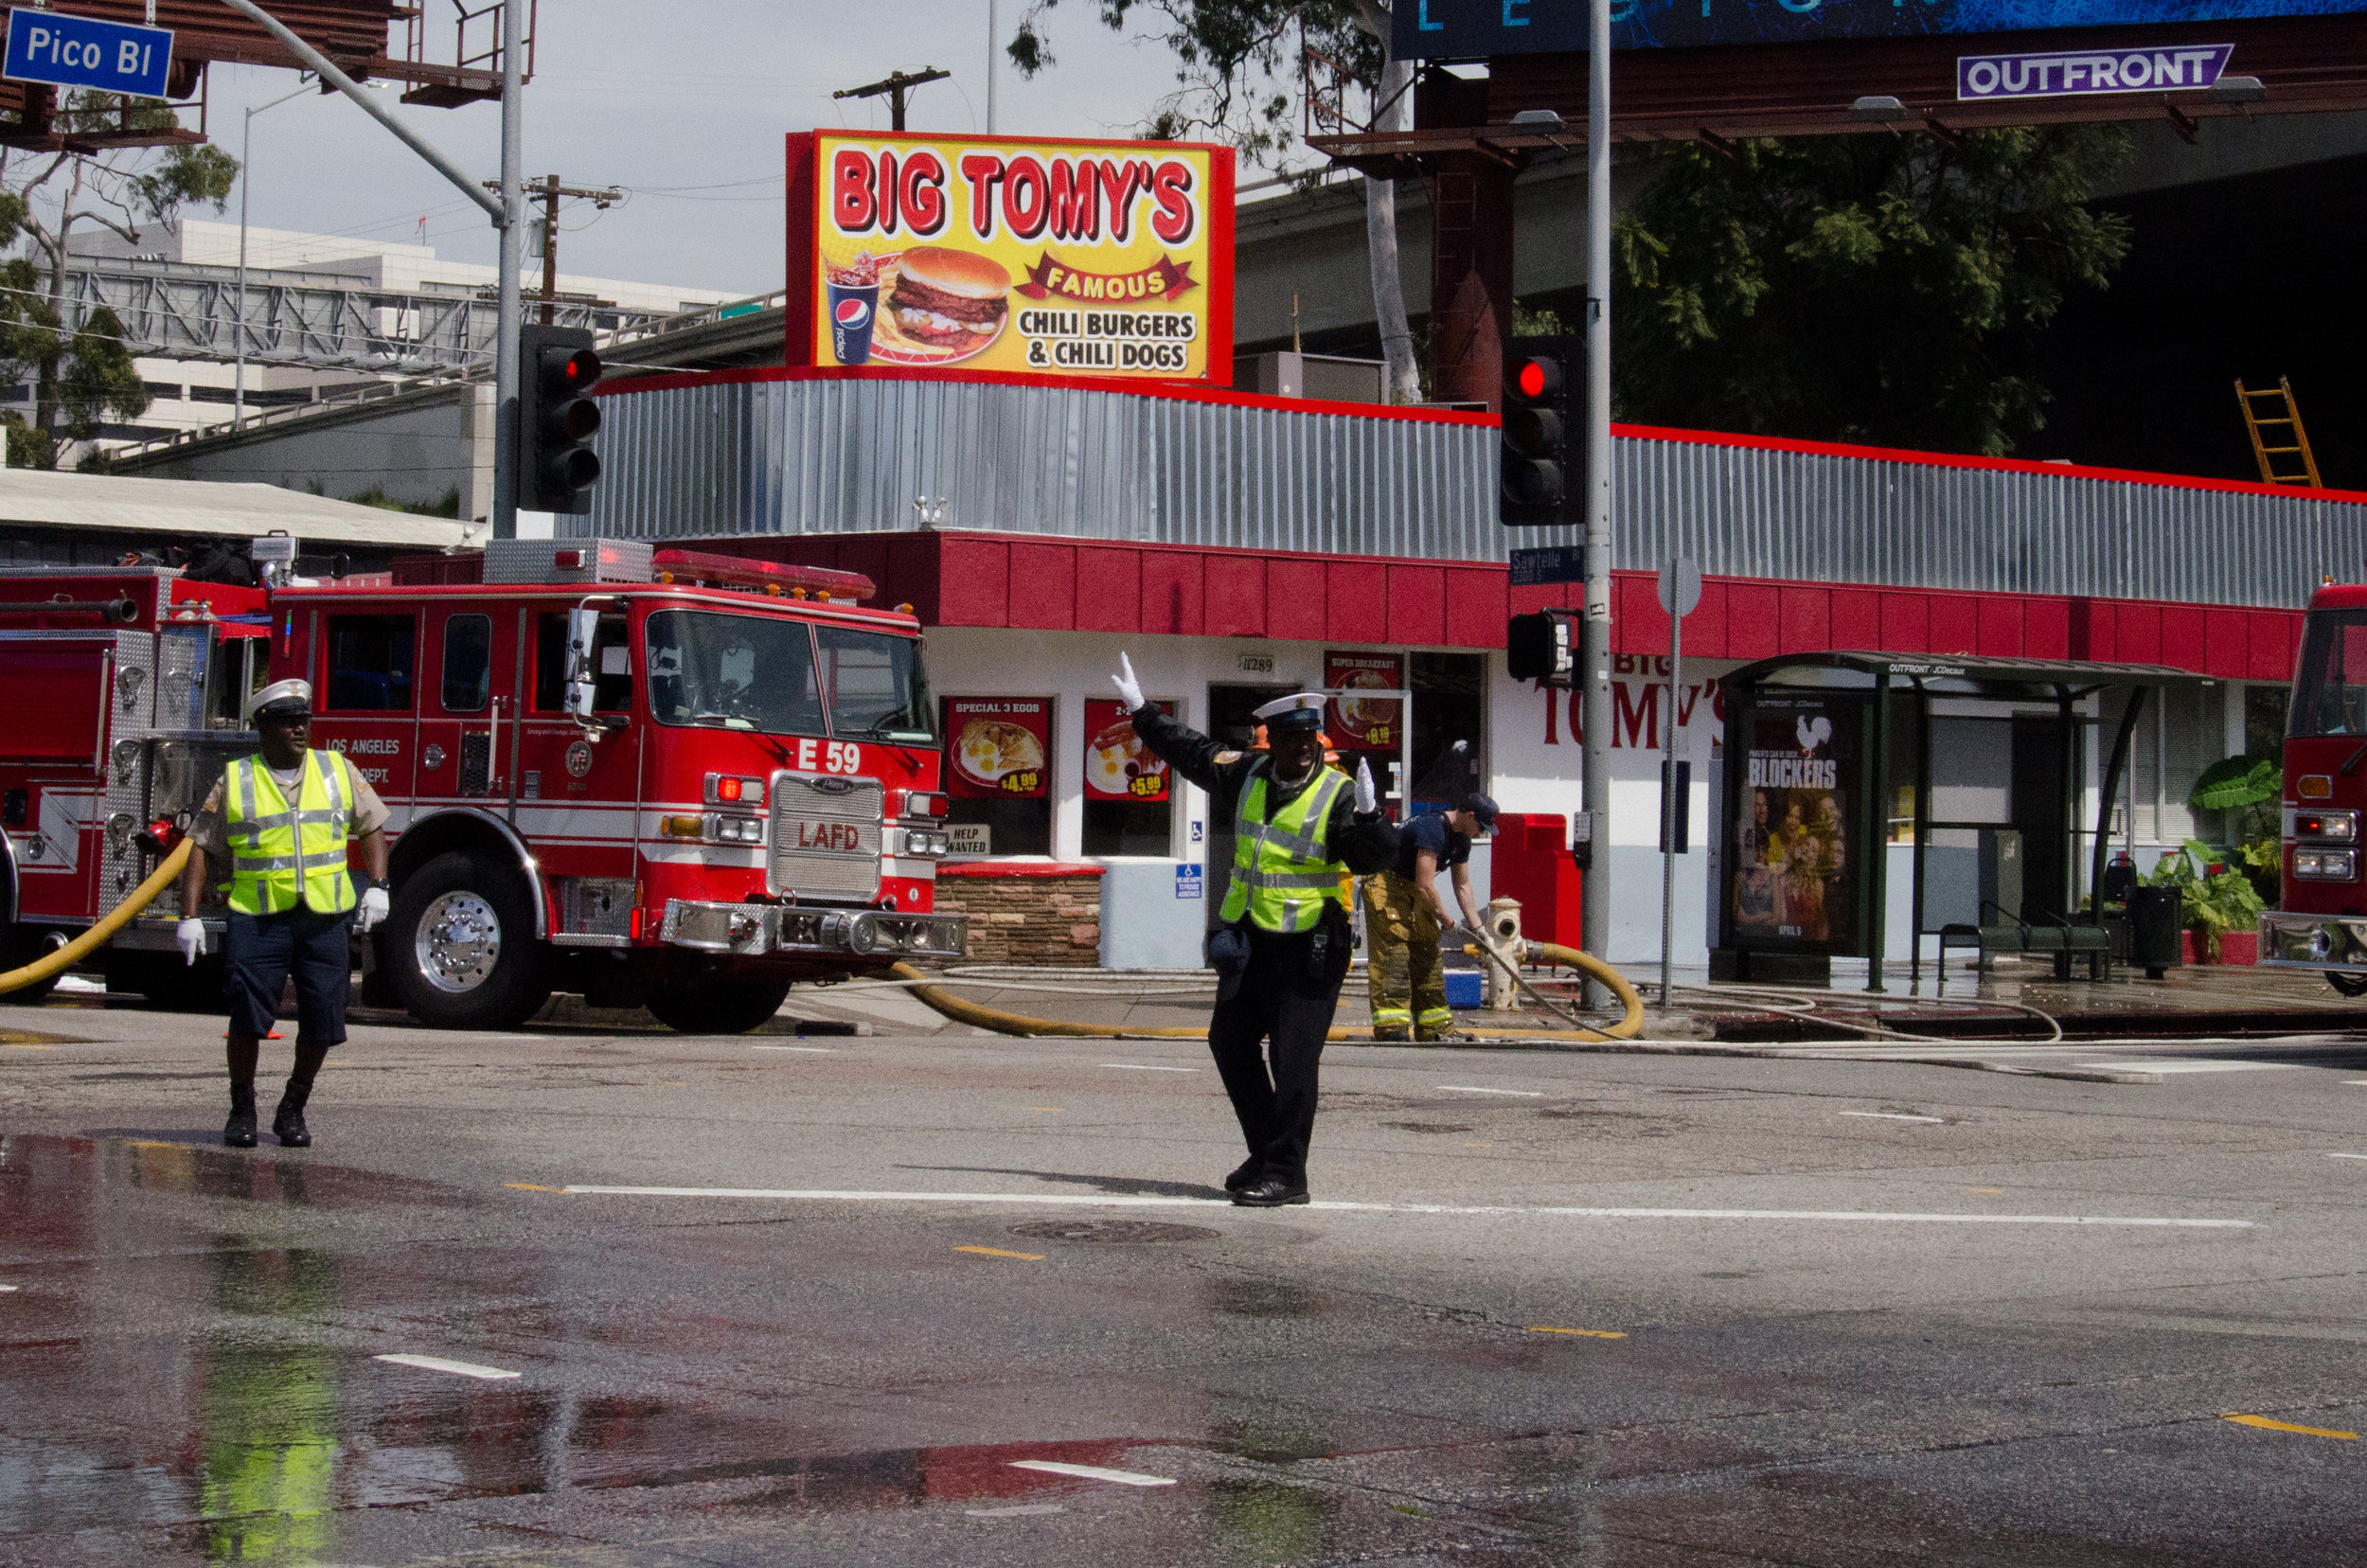 Traffic officers control the area around Big Tomy's on the corner of Sawtelle and Pico in Santa Monica, California shortly after a fire which started behind the grill was extinguished by firefighters from LAFD Station 37 on April 6th, 2018. (Reed Curtis/Corsair Photo)